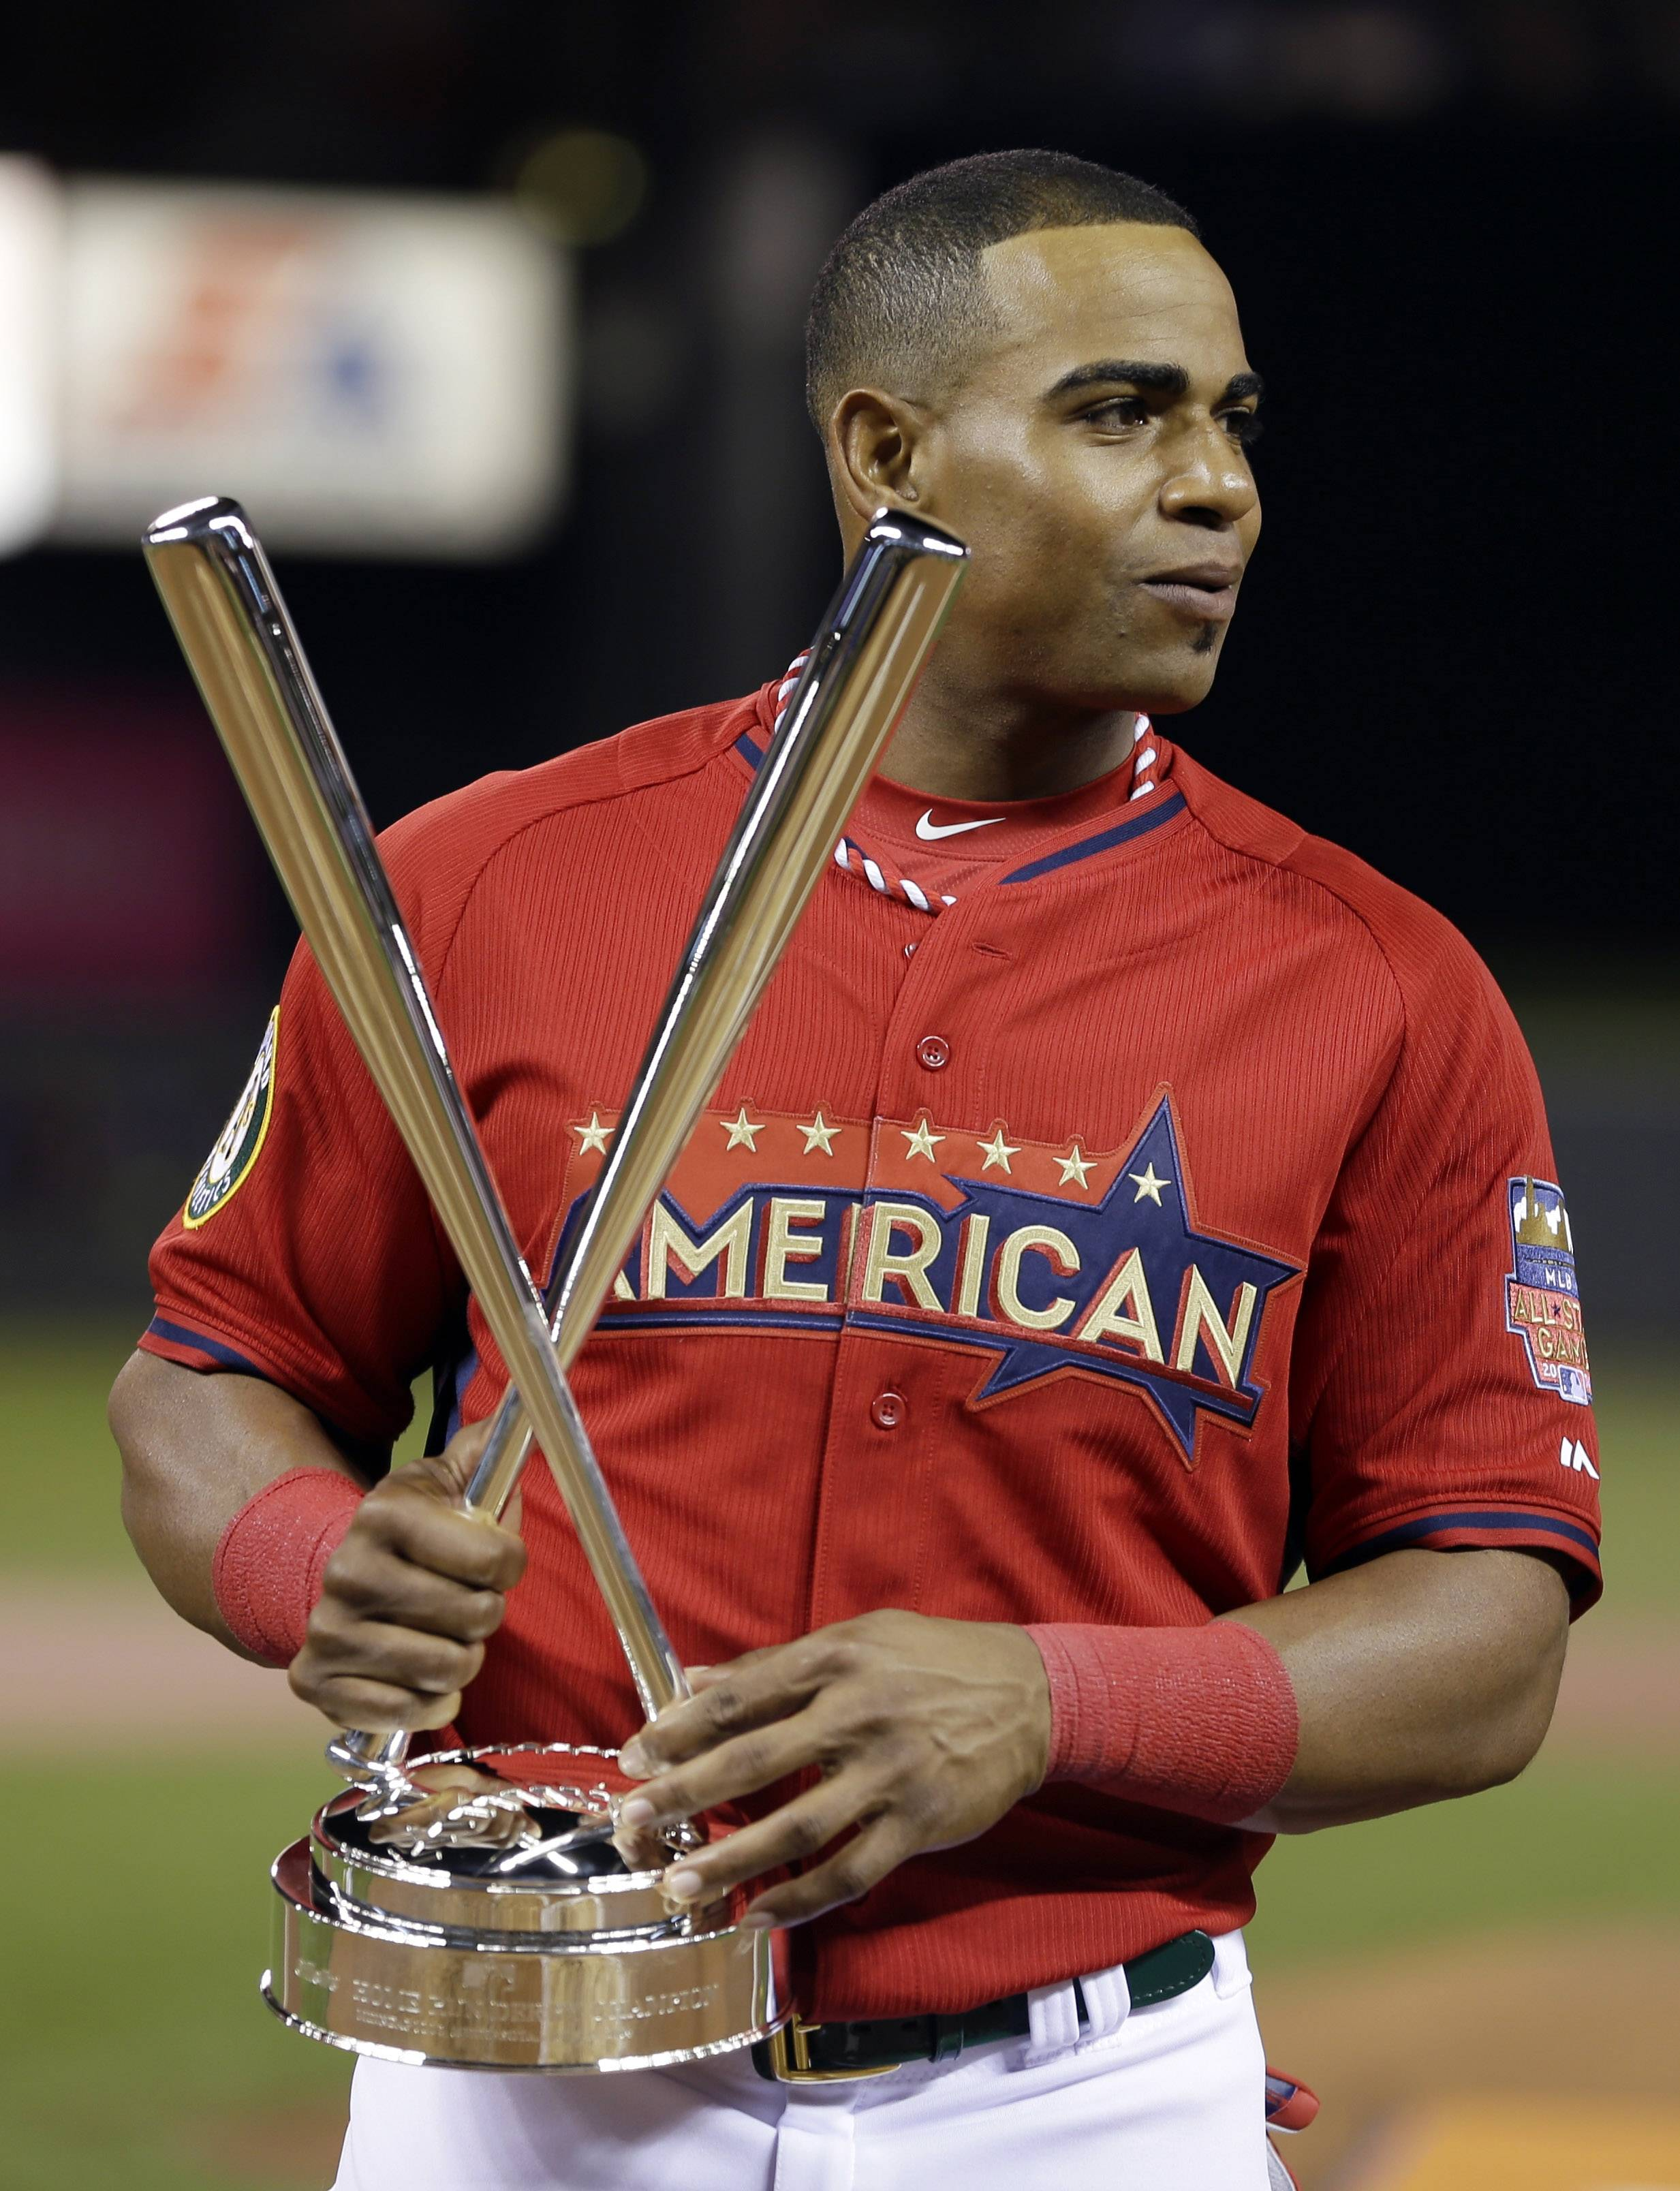 American League's Yoenis Cespedes, of the Oakland Athletics, holds the trophy after winning the MLB All-Star baseball Home Run Derby, Monday, July 14, 2014, in Minneapolis. Cespedes defeated National League's Todd Frazier, of the Cincinnati Reds, in the finals.